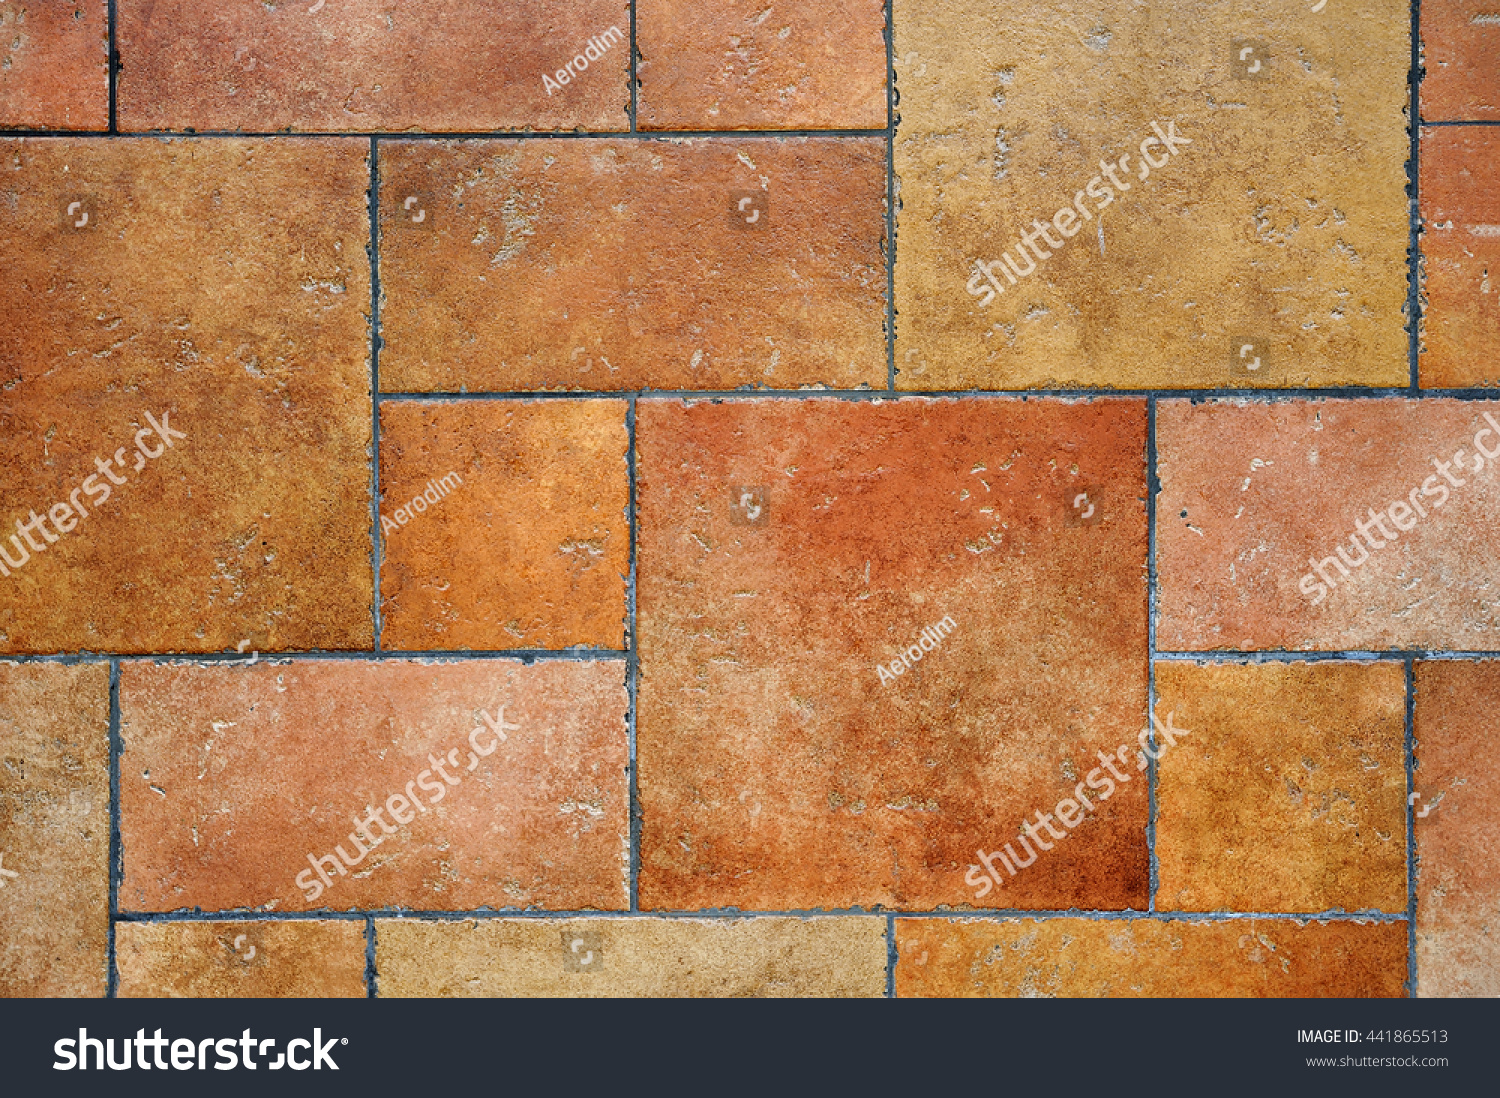 Colored floor tiles background stock photo 441865513 shutterstock dailygadgetfo Choice Image